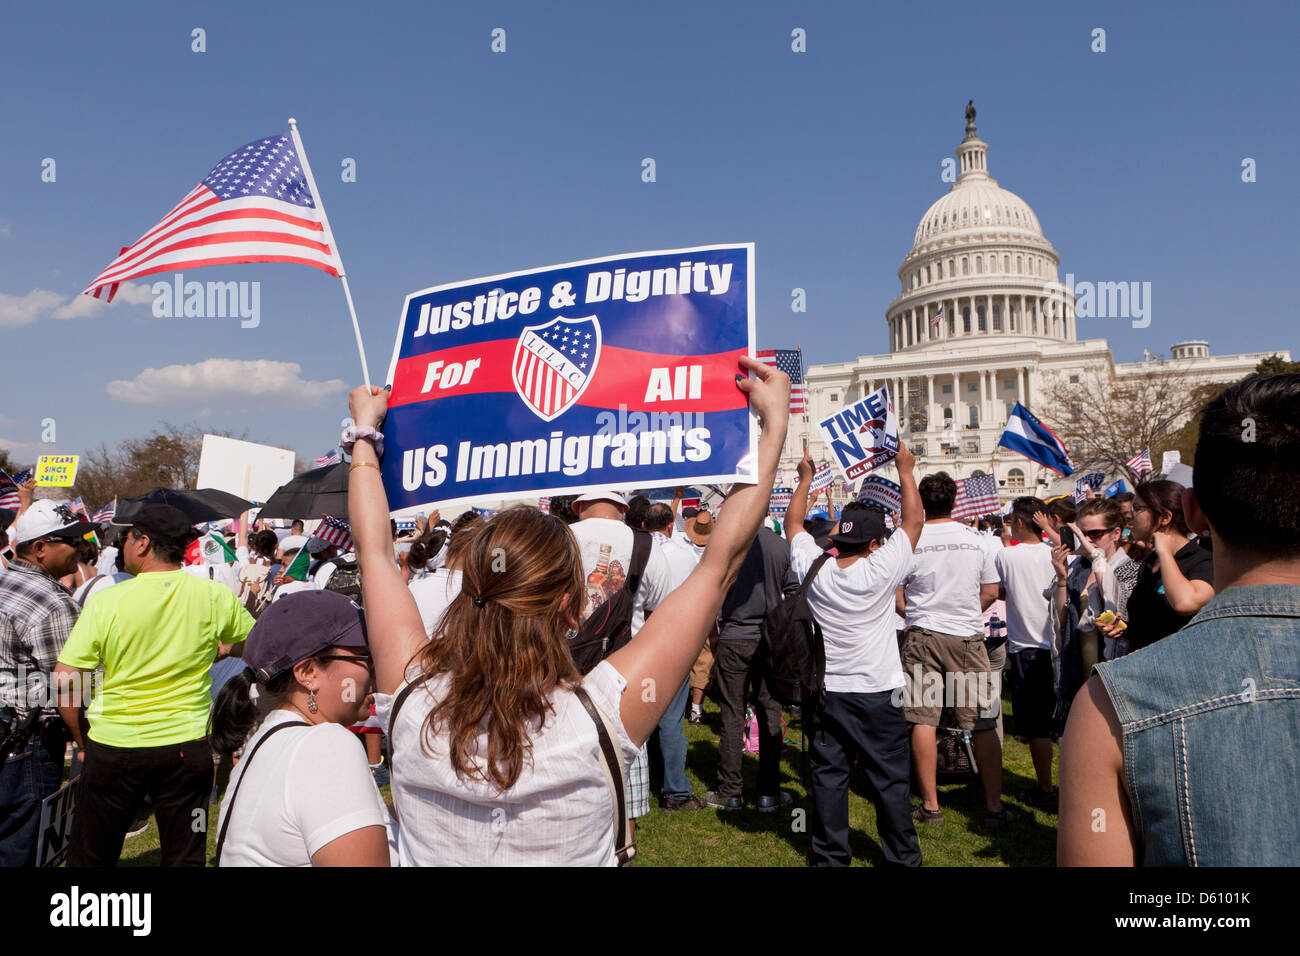 Woman holding a placard at an immigration reform rally in Washington DC - Stock Image